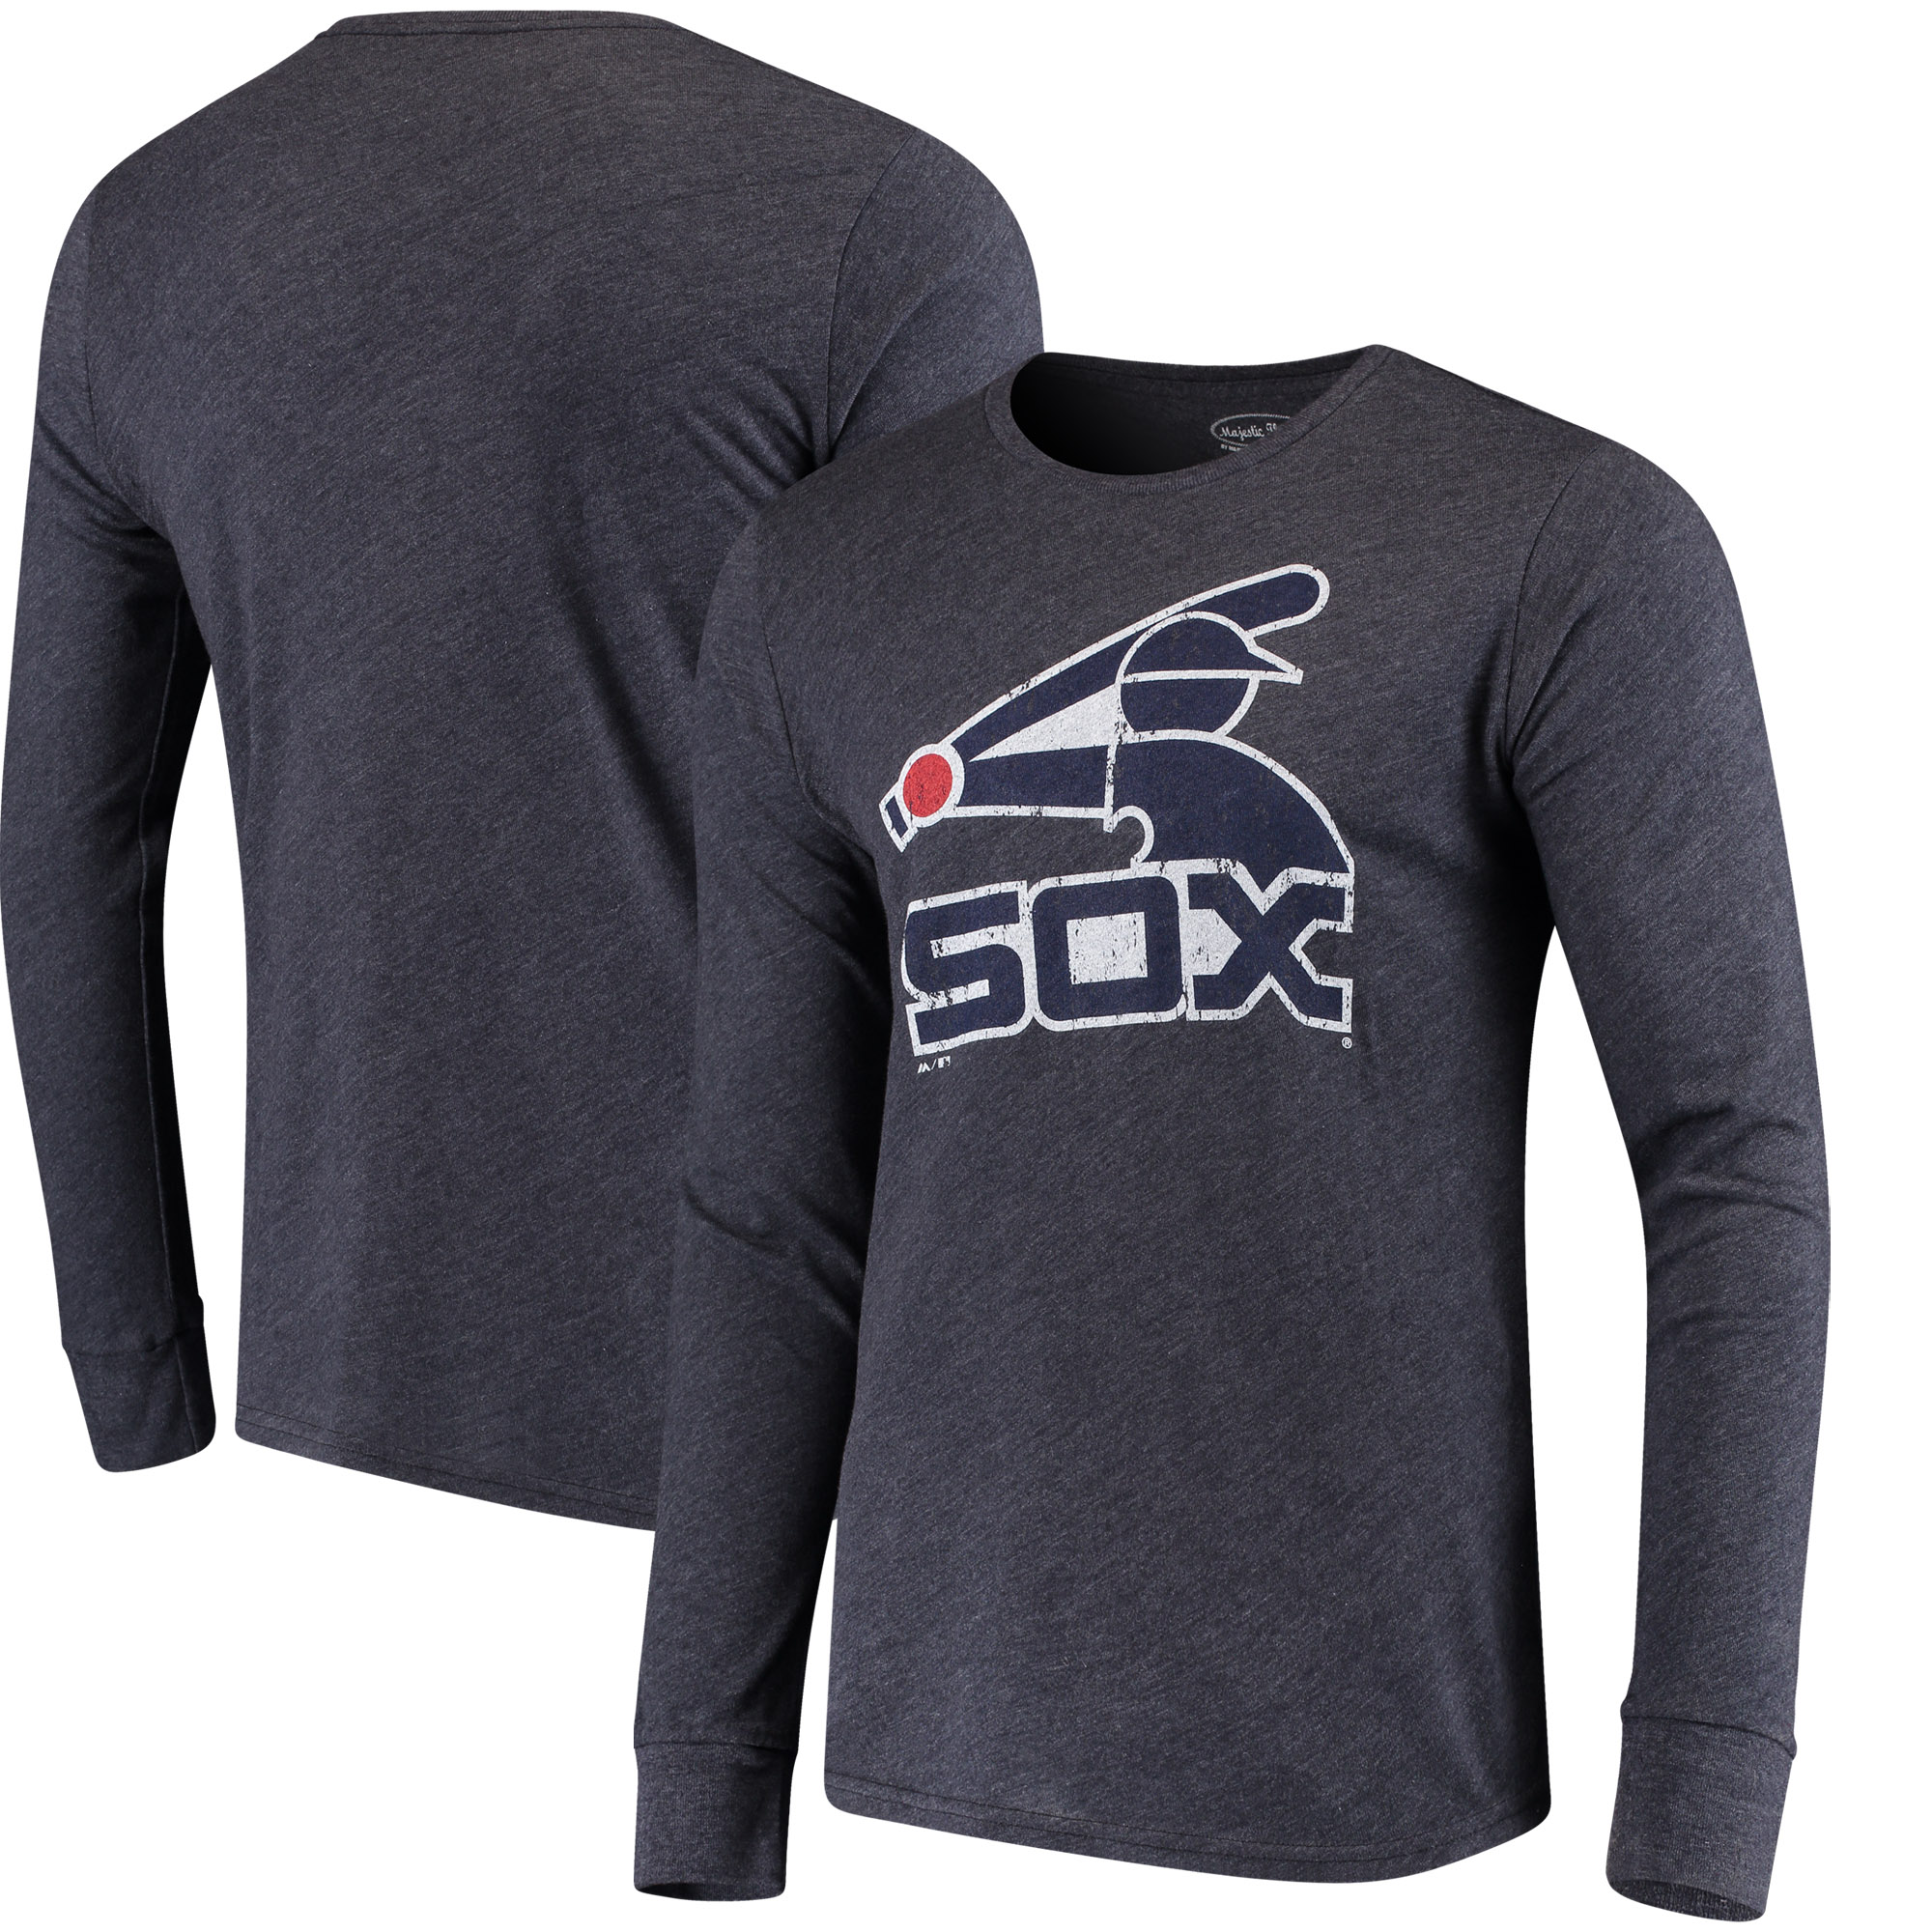 Men's Majestic Threads Heathered Navy Chicago White Sox Tri-Blend Long Sleeve T-Shirt